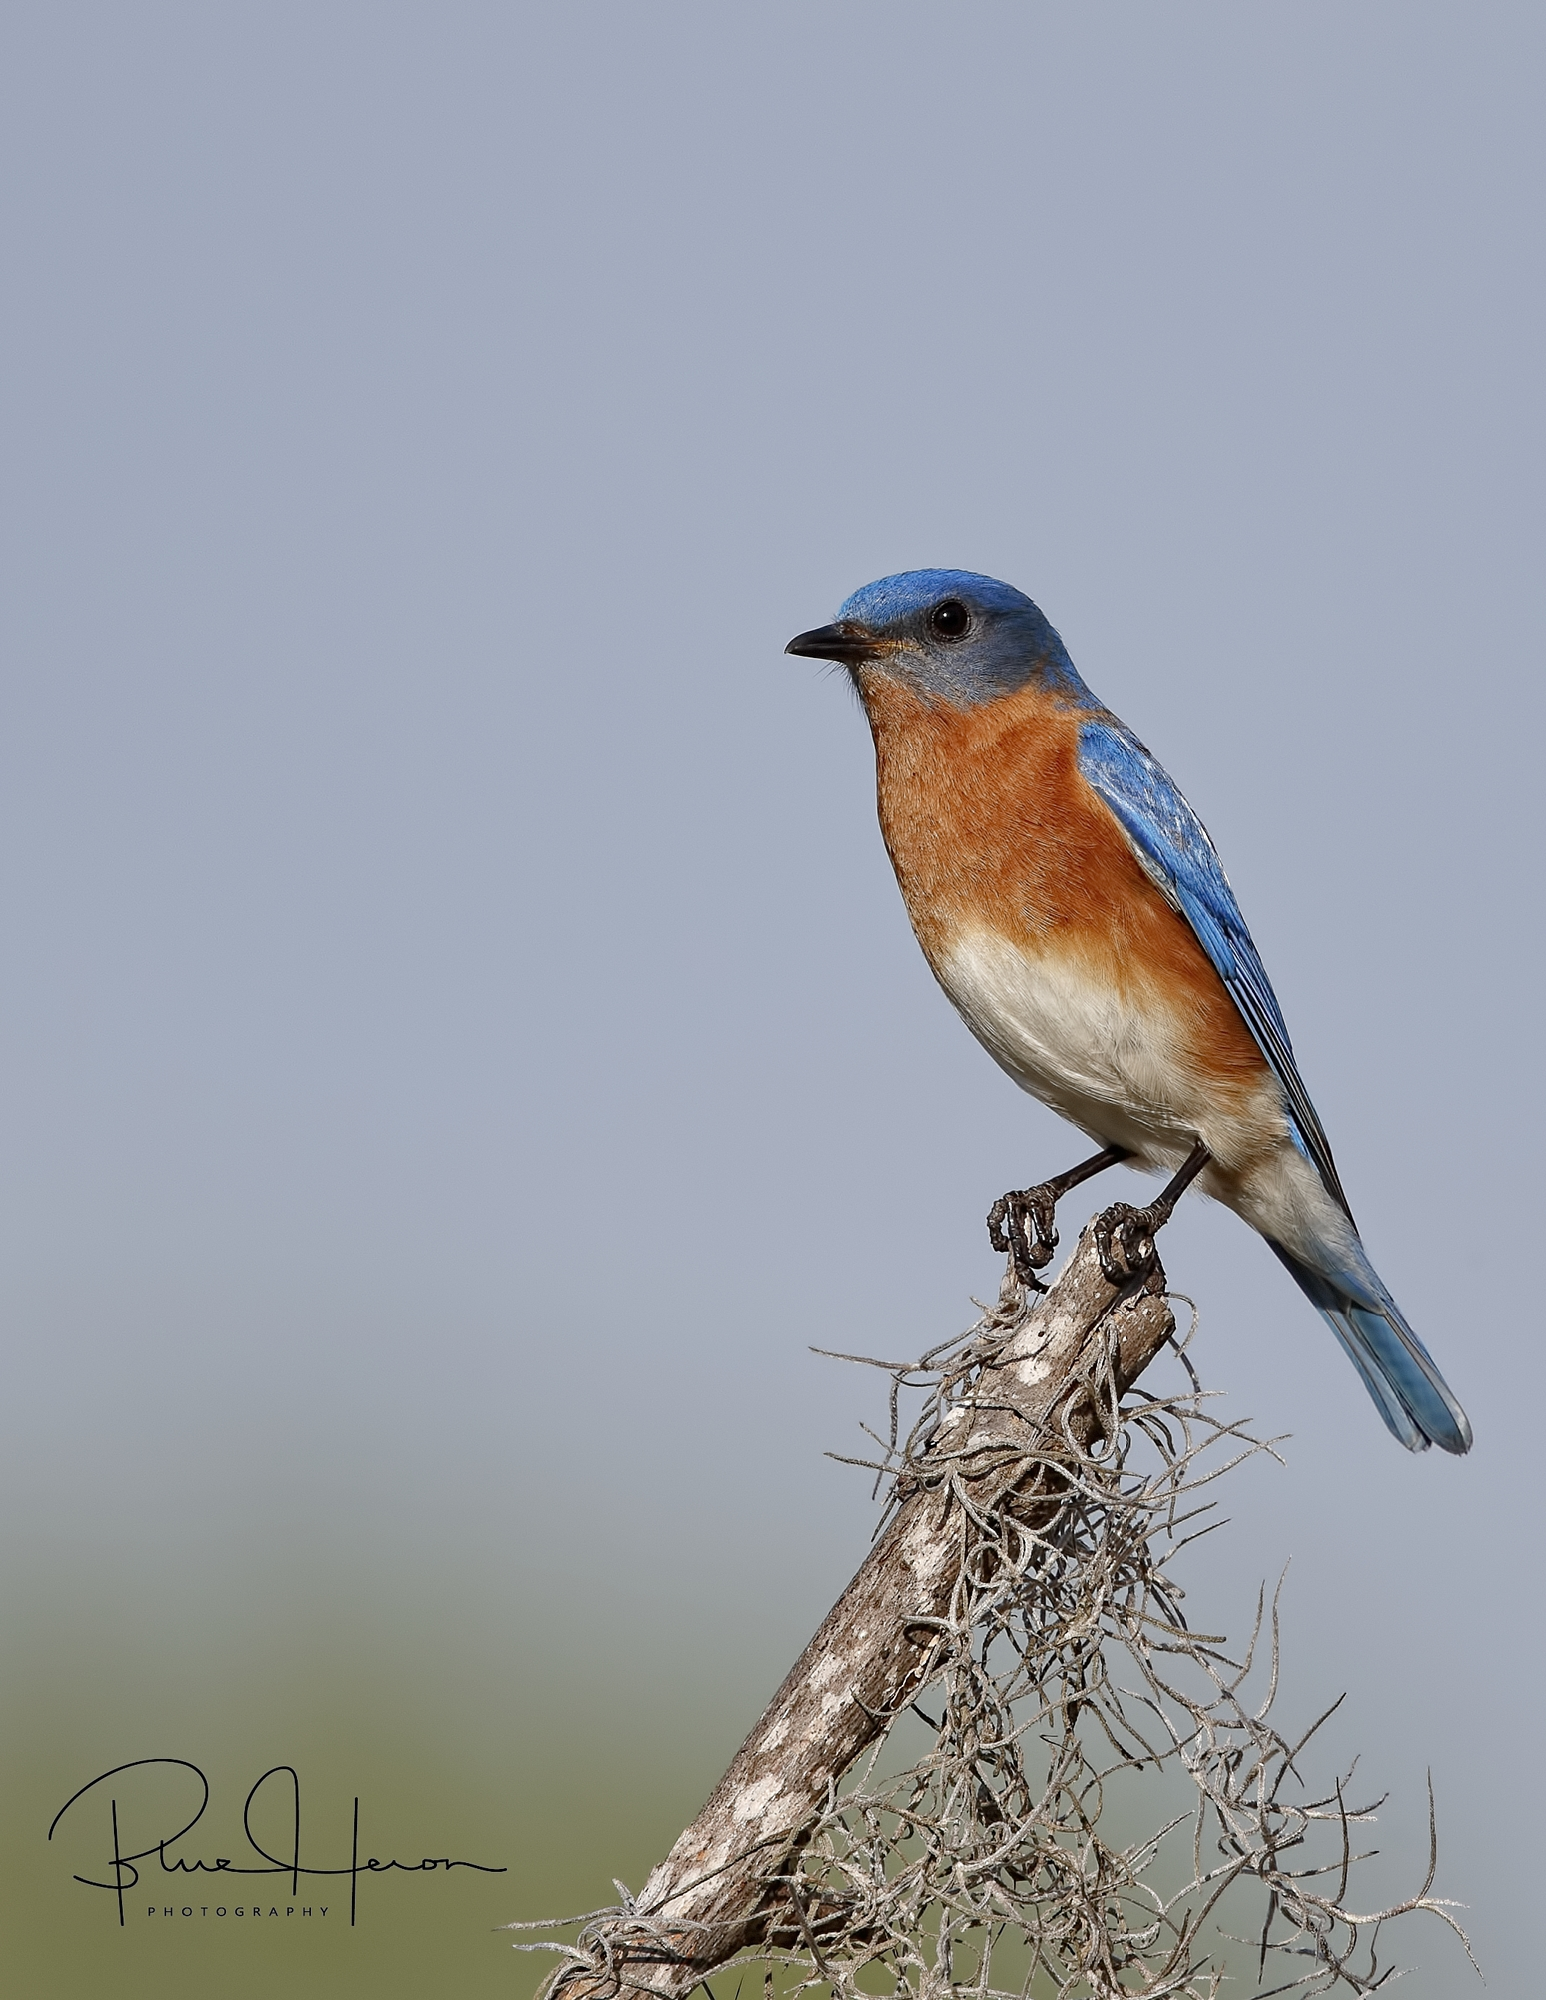 The Bluebird male is the more colorful of the pair.